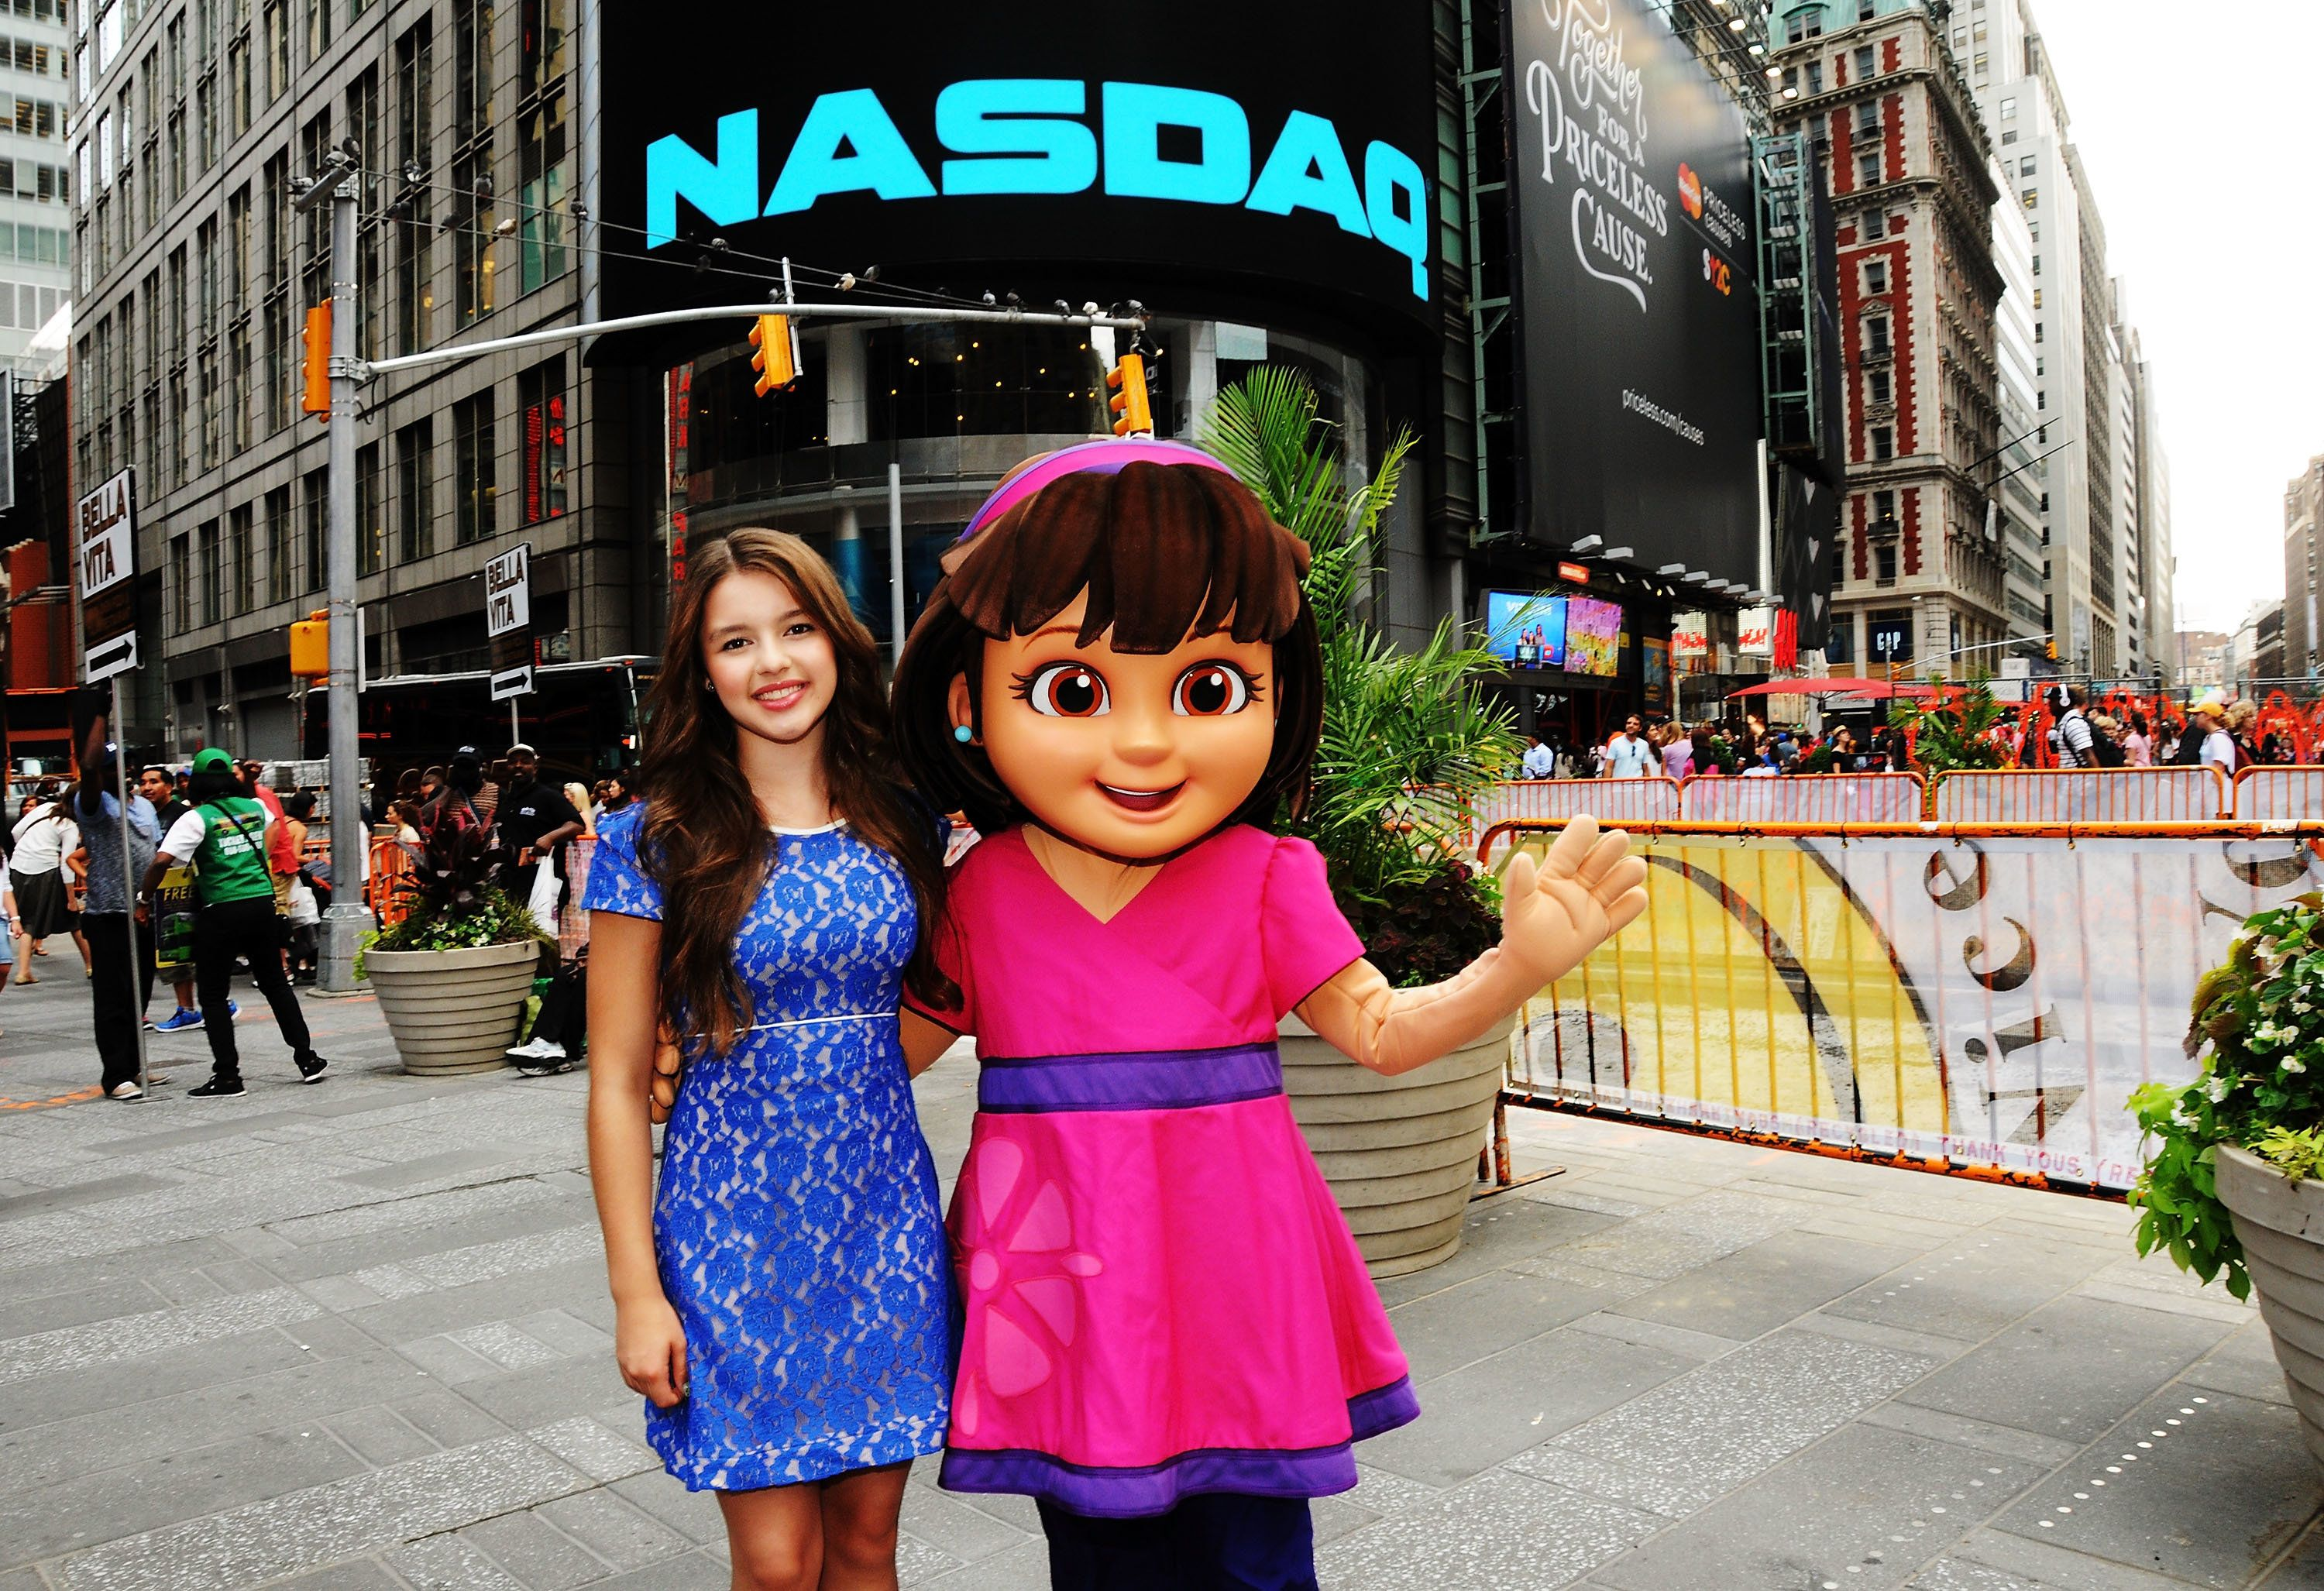 NEW YORK, NY - JULY 29: The voice of 'Dora' in 'Dora and Friends' and 'Dora the Explorer' Fatima Ptacek (L) poses with Nickelodeon's character 'Dora' outside the closing bell at the NASDAQ MarketSite on July 29, 2014 in New York City.  (Photo by Desiree Navarro/WireImage)